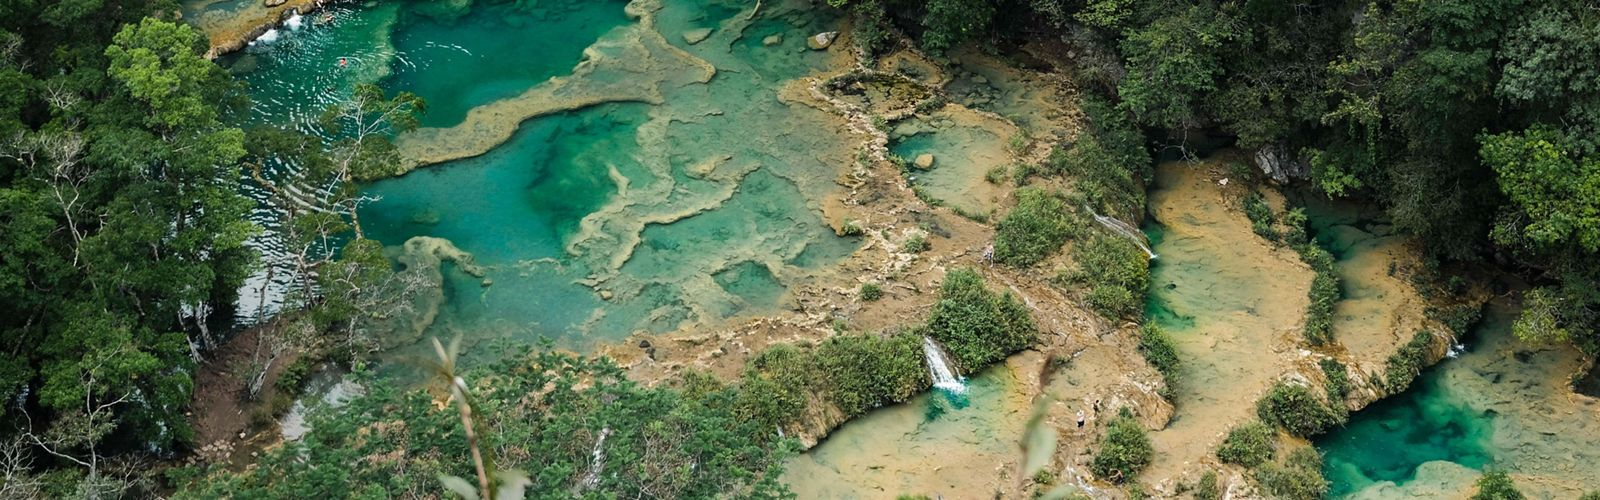 The natural pools of Semuc Champey in Guatemala are perhaps one of the most impressive natural wonders on the planet.